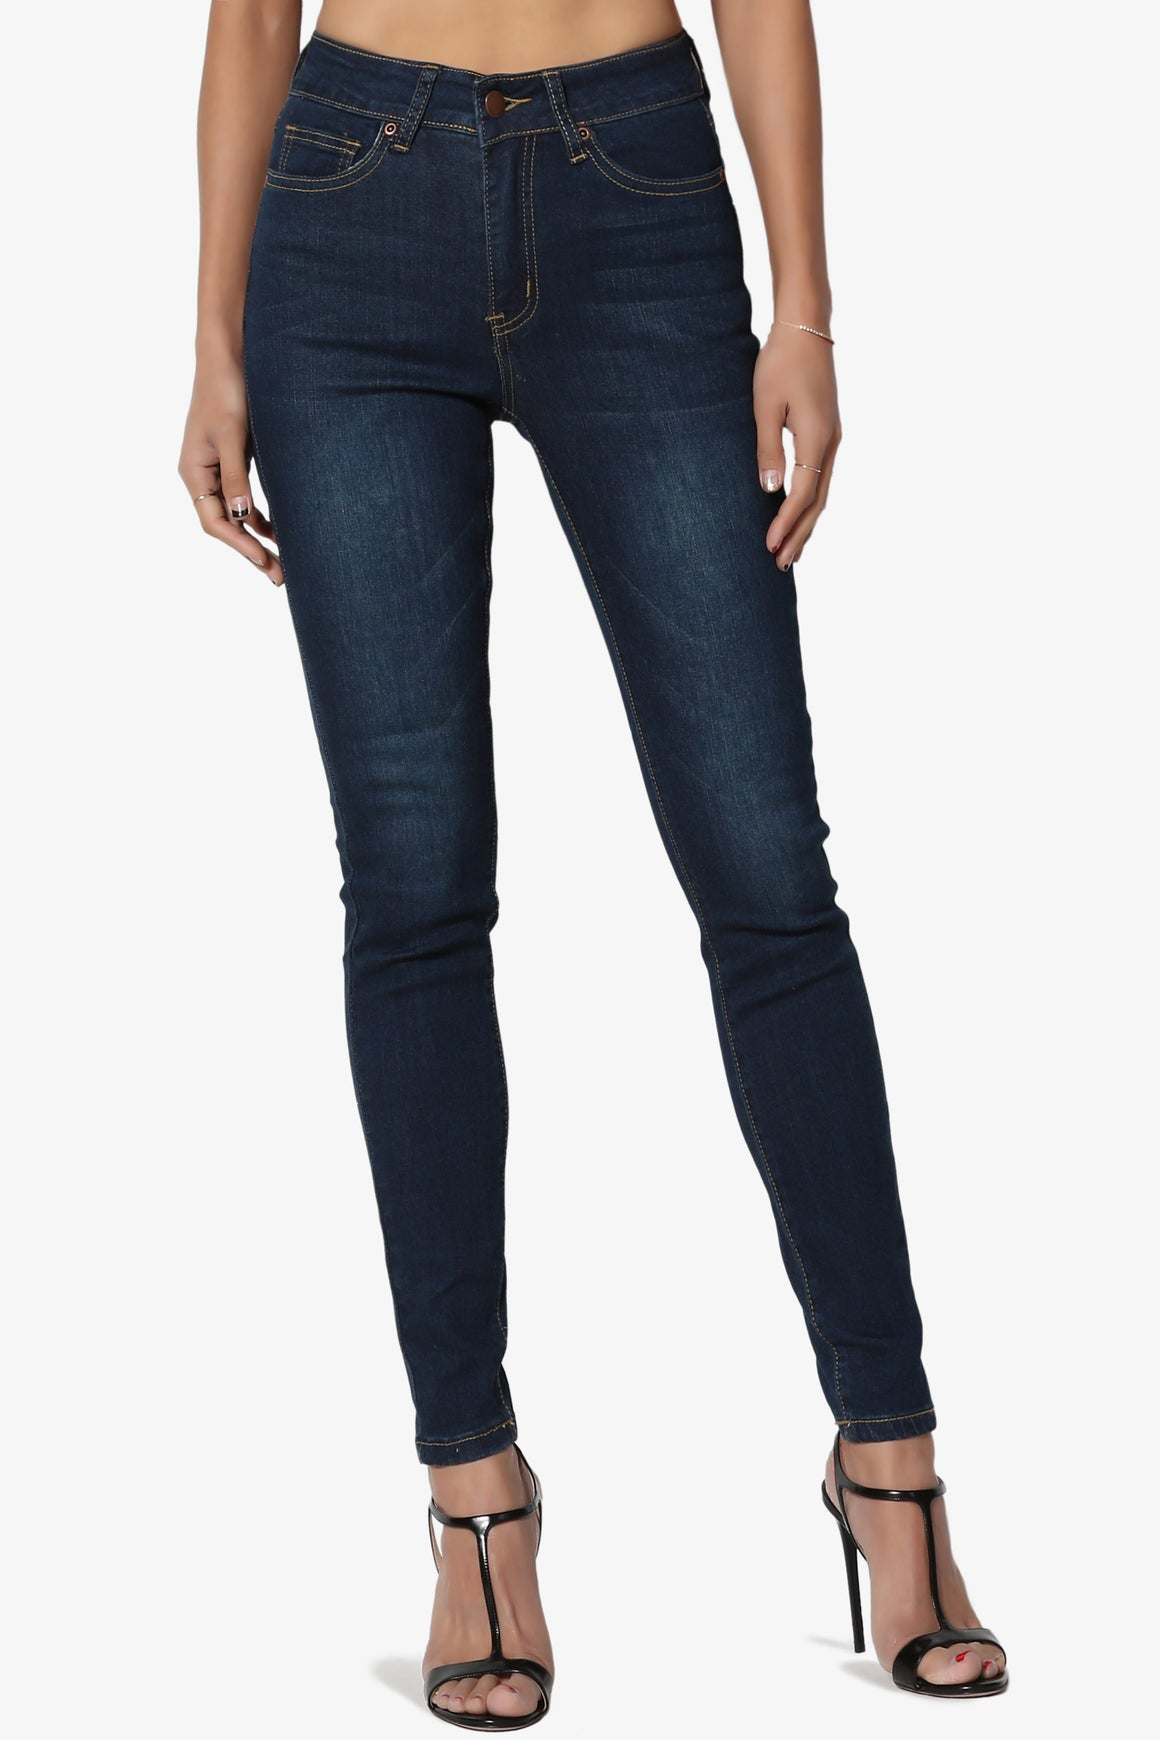 Jass Basic High Rise Skinny Jeans in Dark - TheMogan